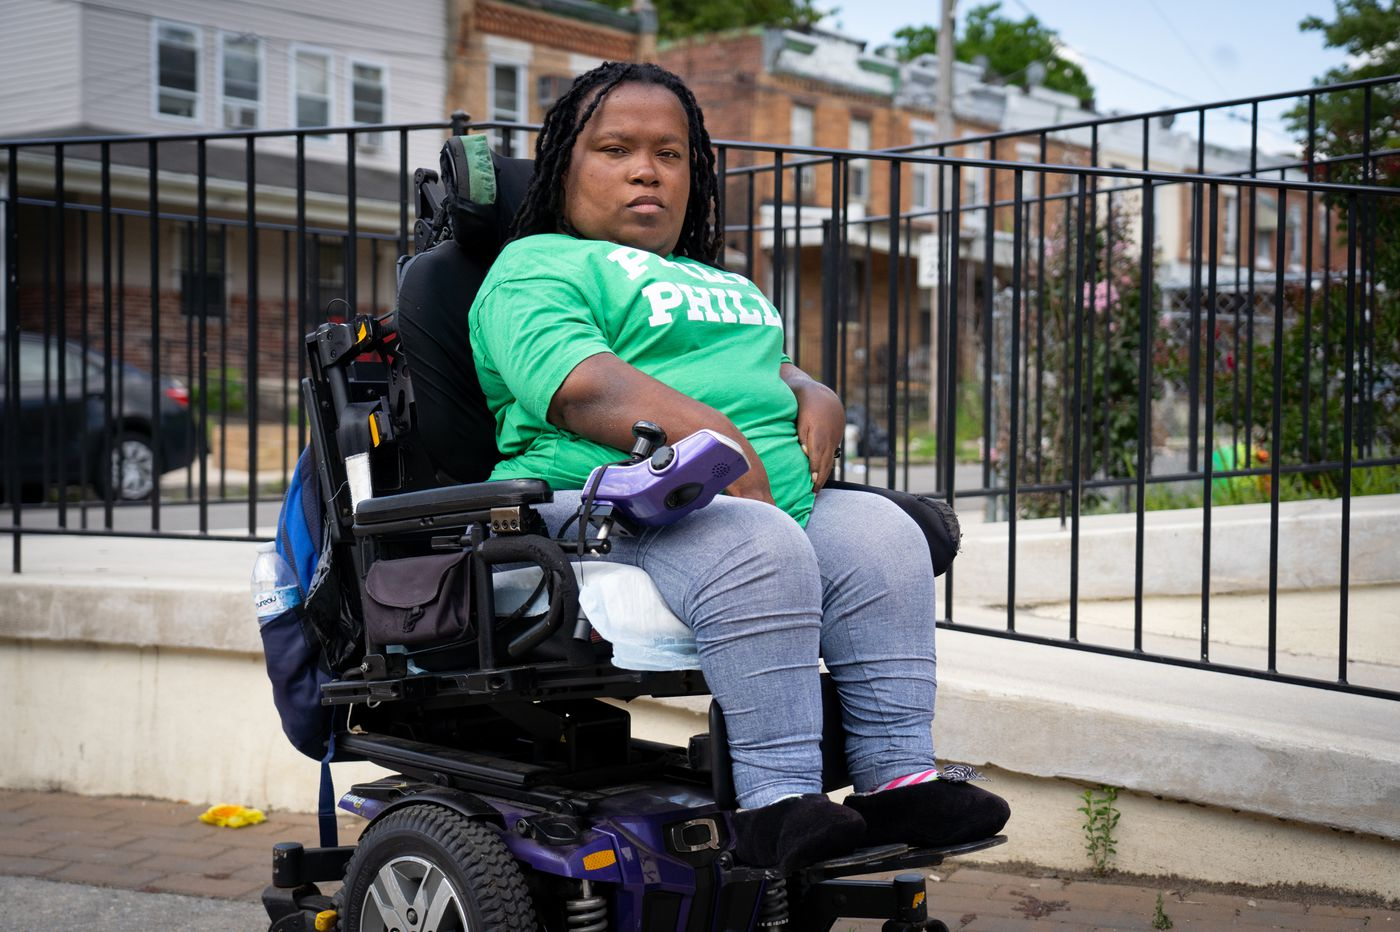 Outdoor dining fences out people who are disabled | Morning Newsletter